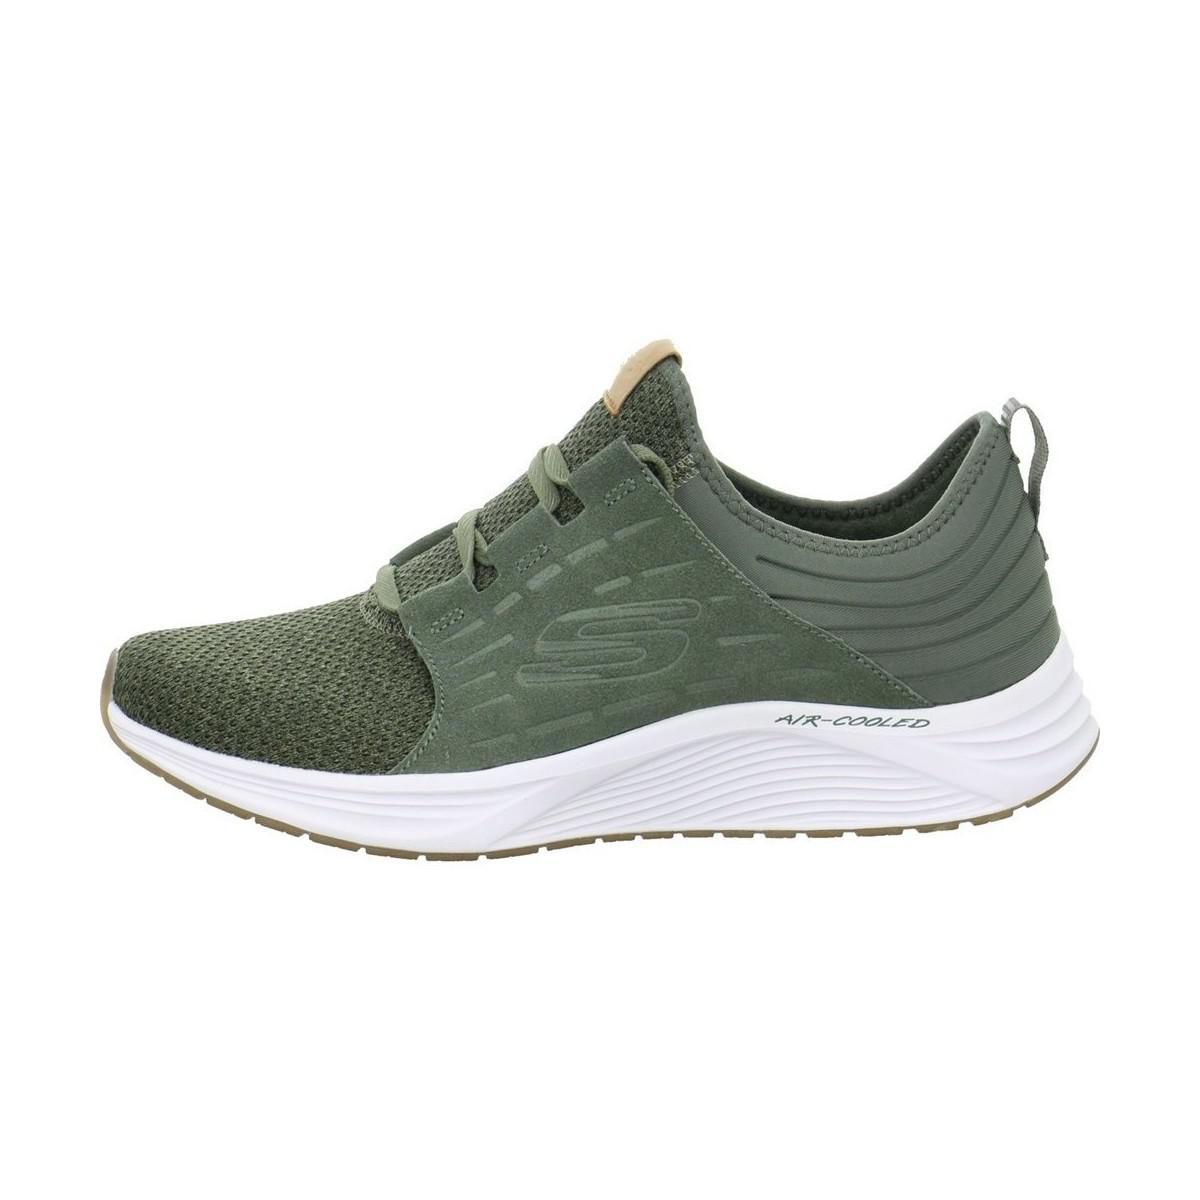 Shoes (trainers) In Green for Men - Lyst